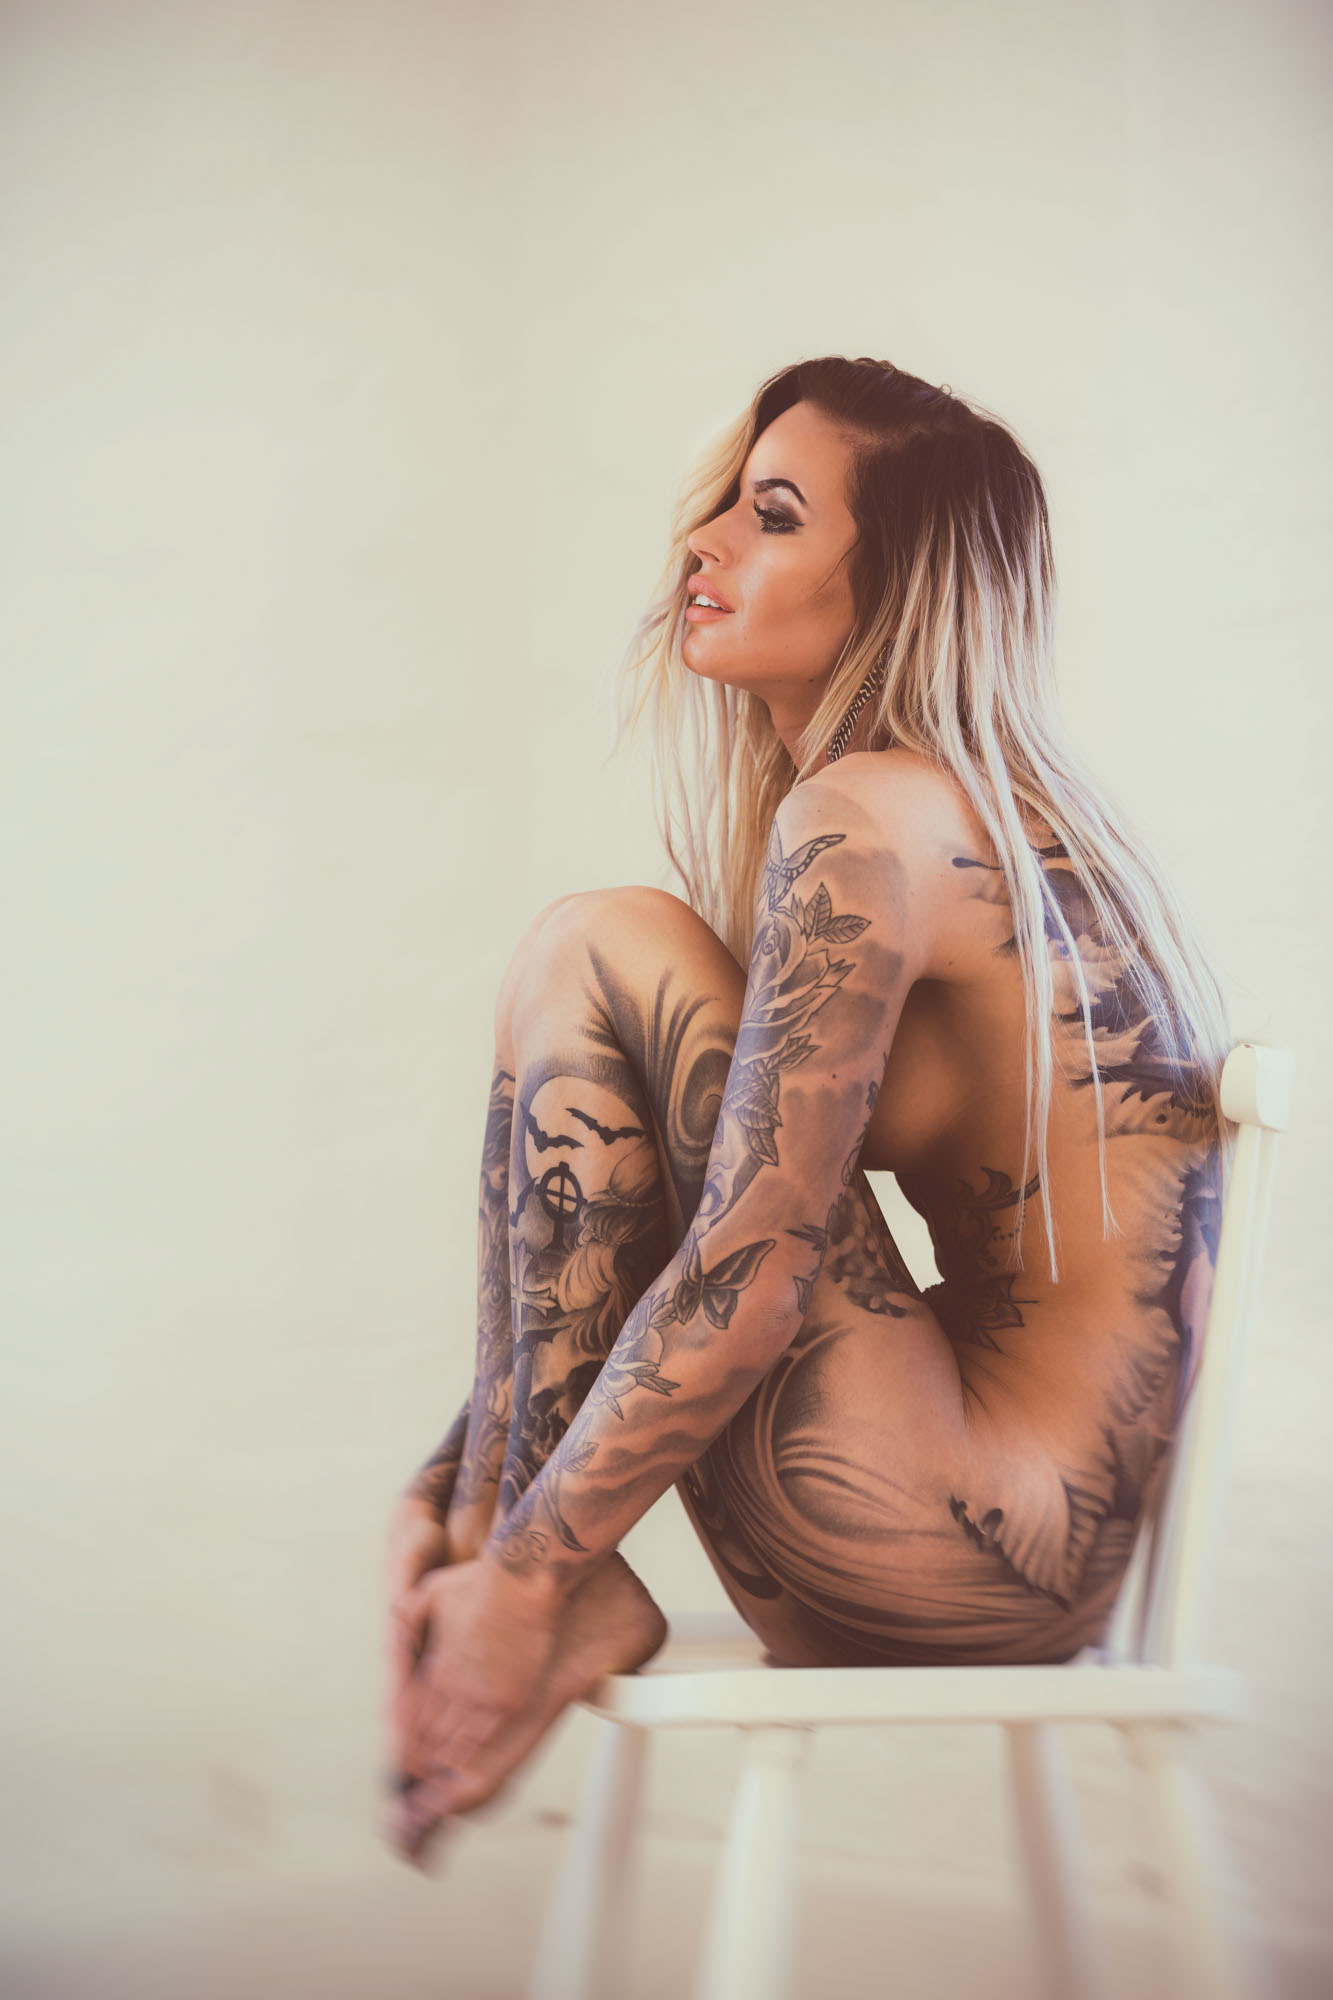 Portrait photographer Jesper Anhede, nude tattoo girl on chair, Linn Forsberg, Sweden